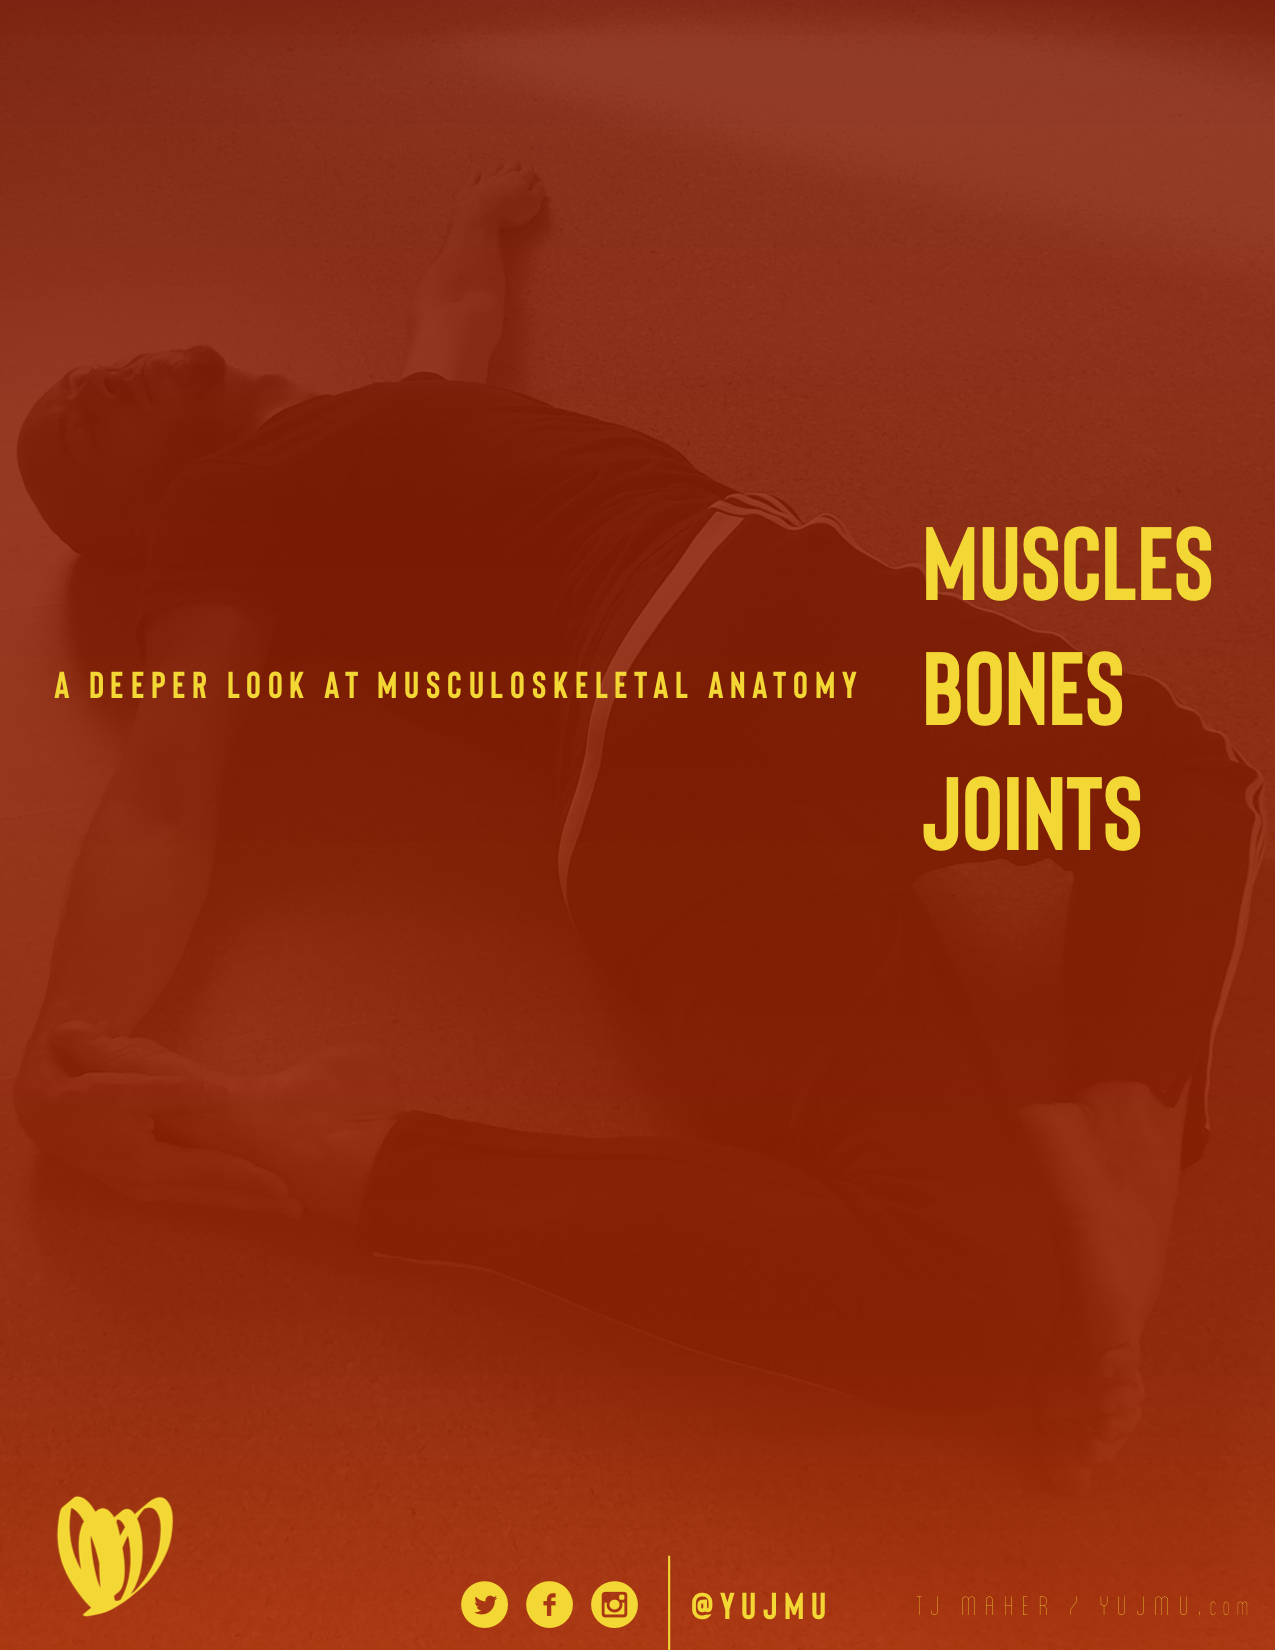 MUSCLES BONES JOINTS Cover.jpg